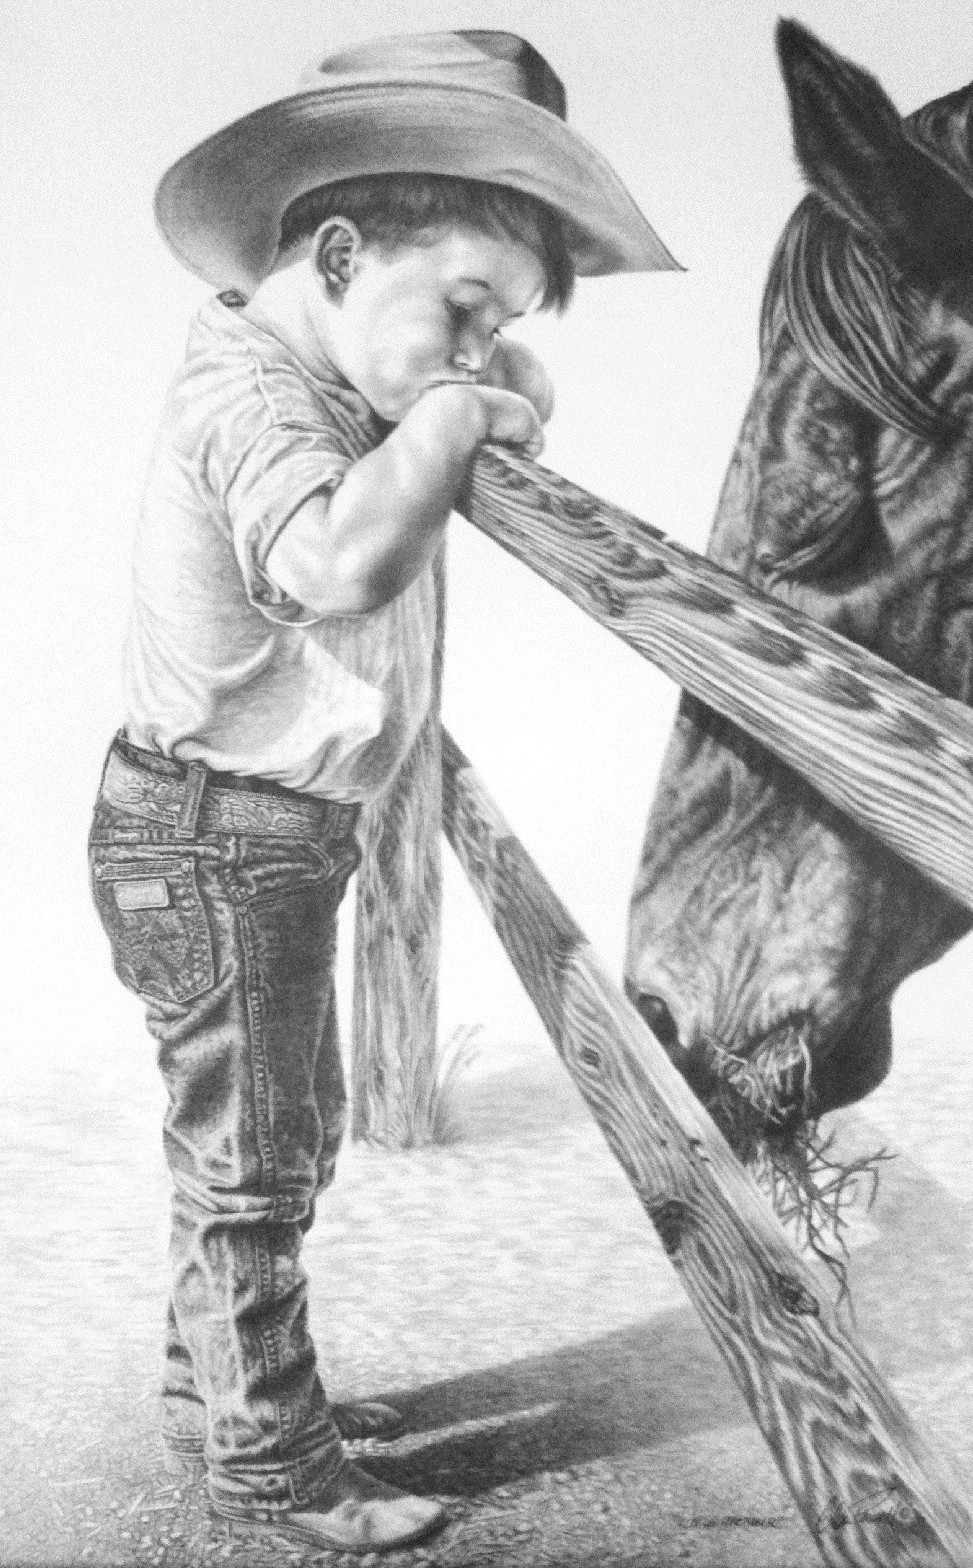 Cowboy And Horse Sketches hard To Get 18 X 24 2